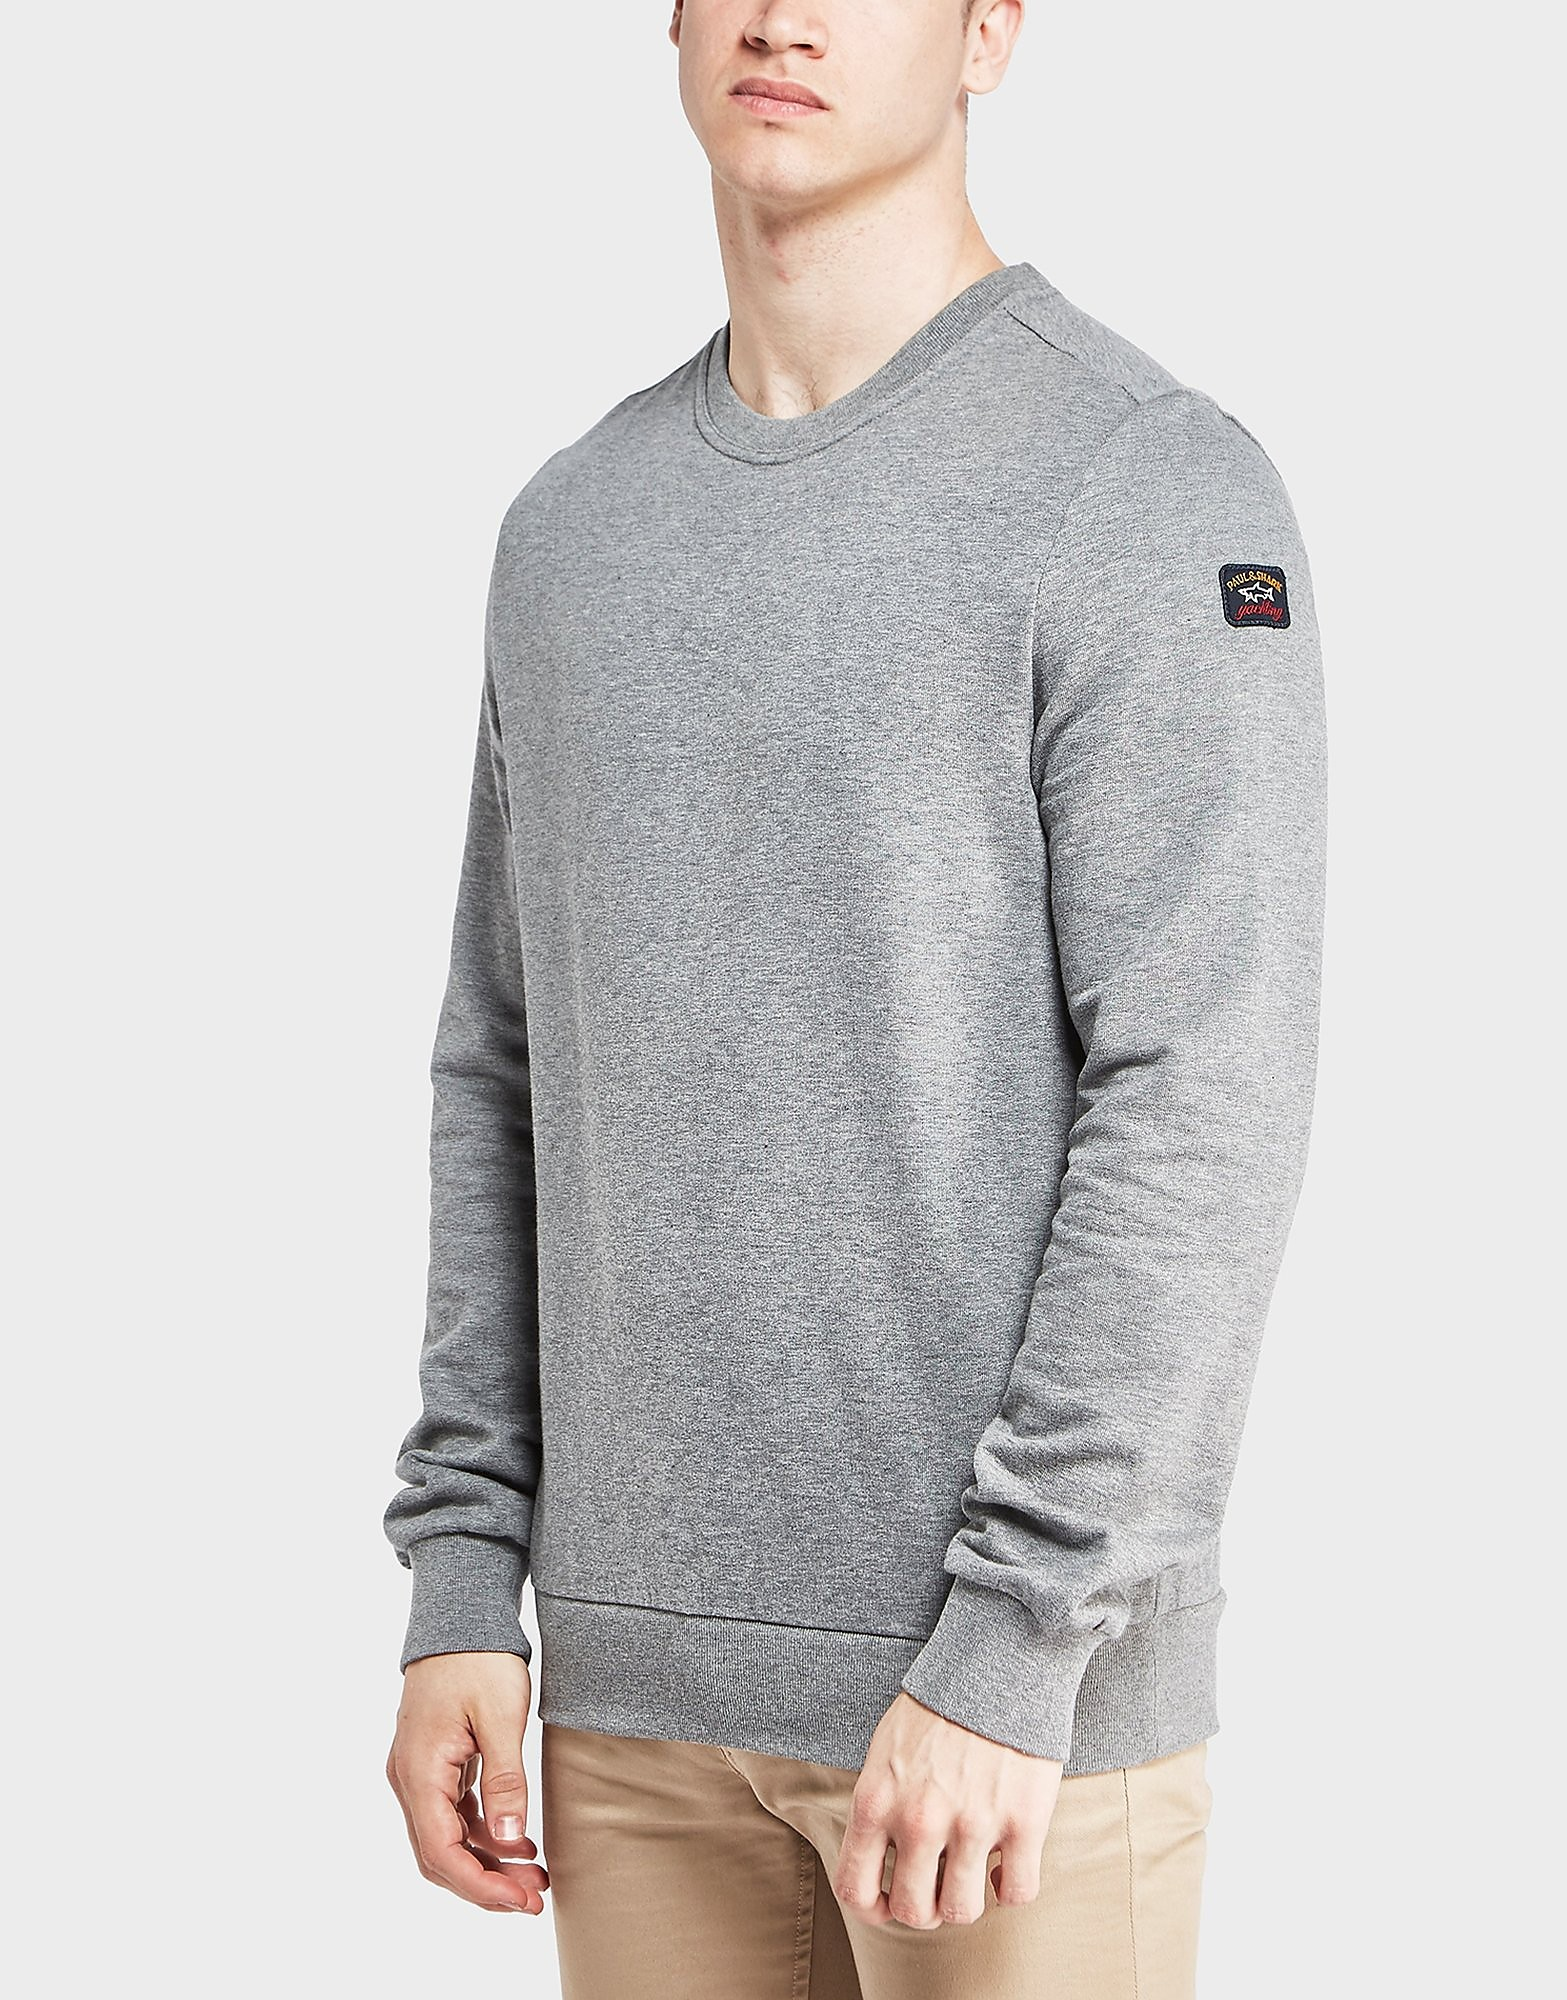 Paul and Shark Crew Sweatshirt